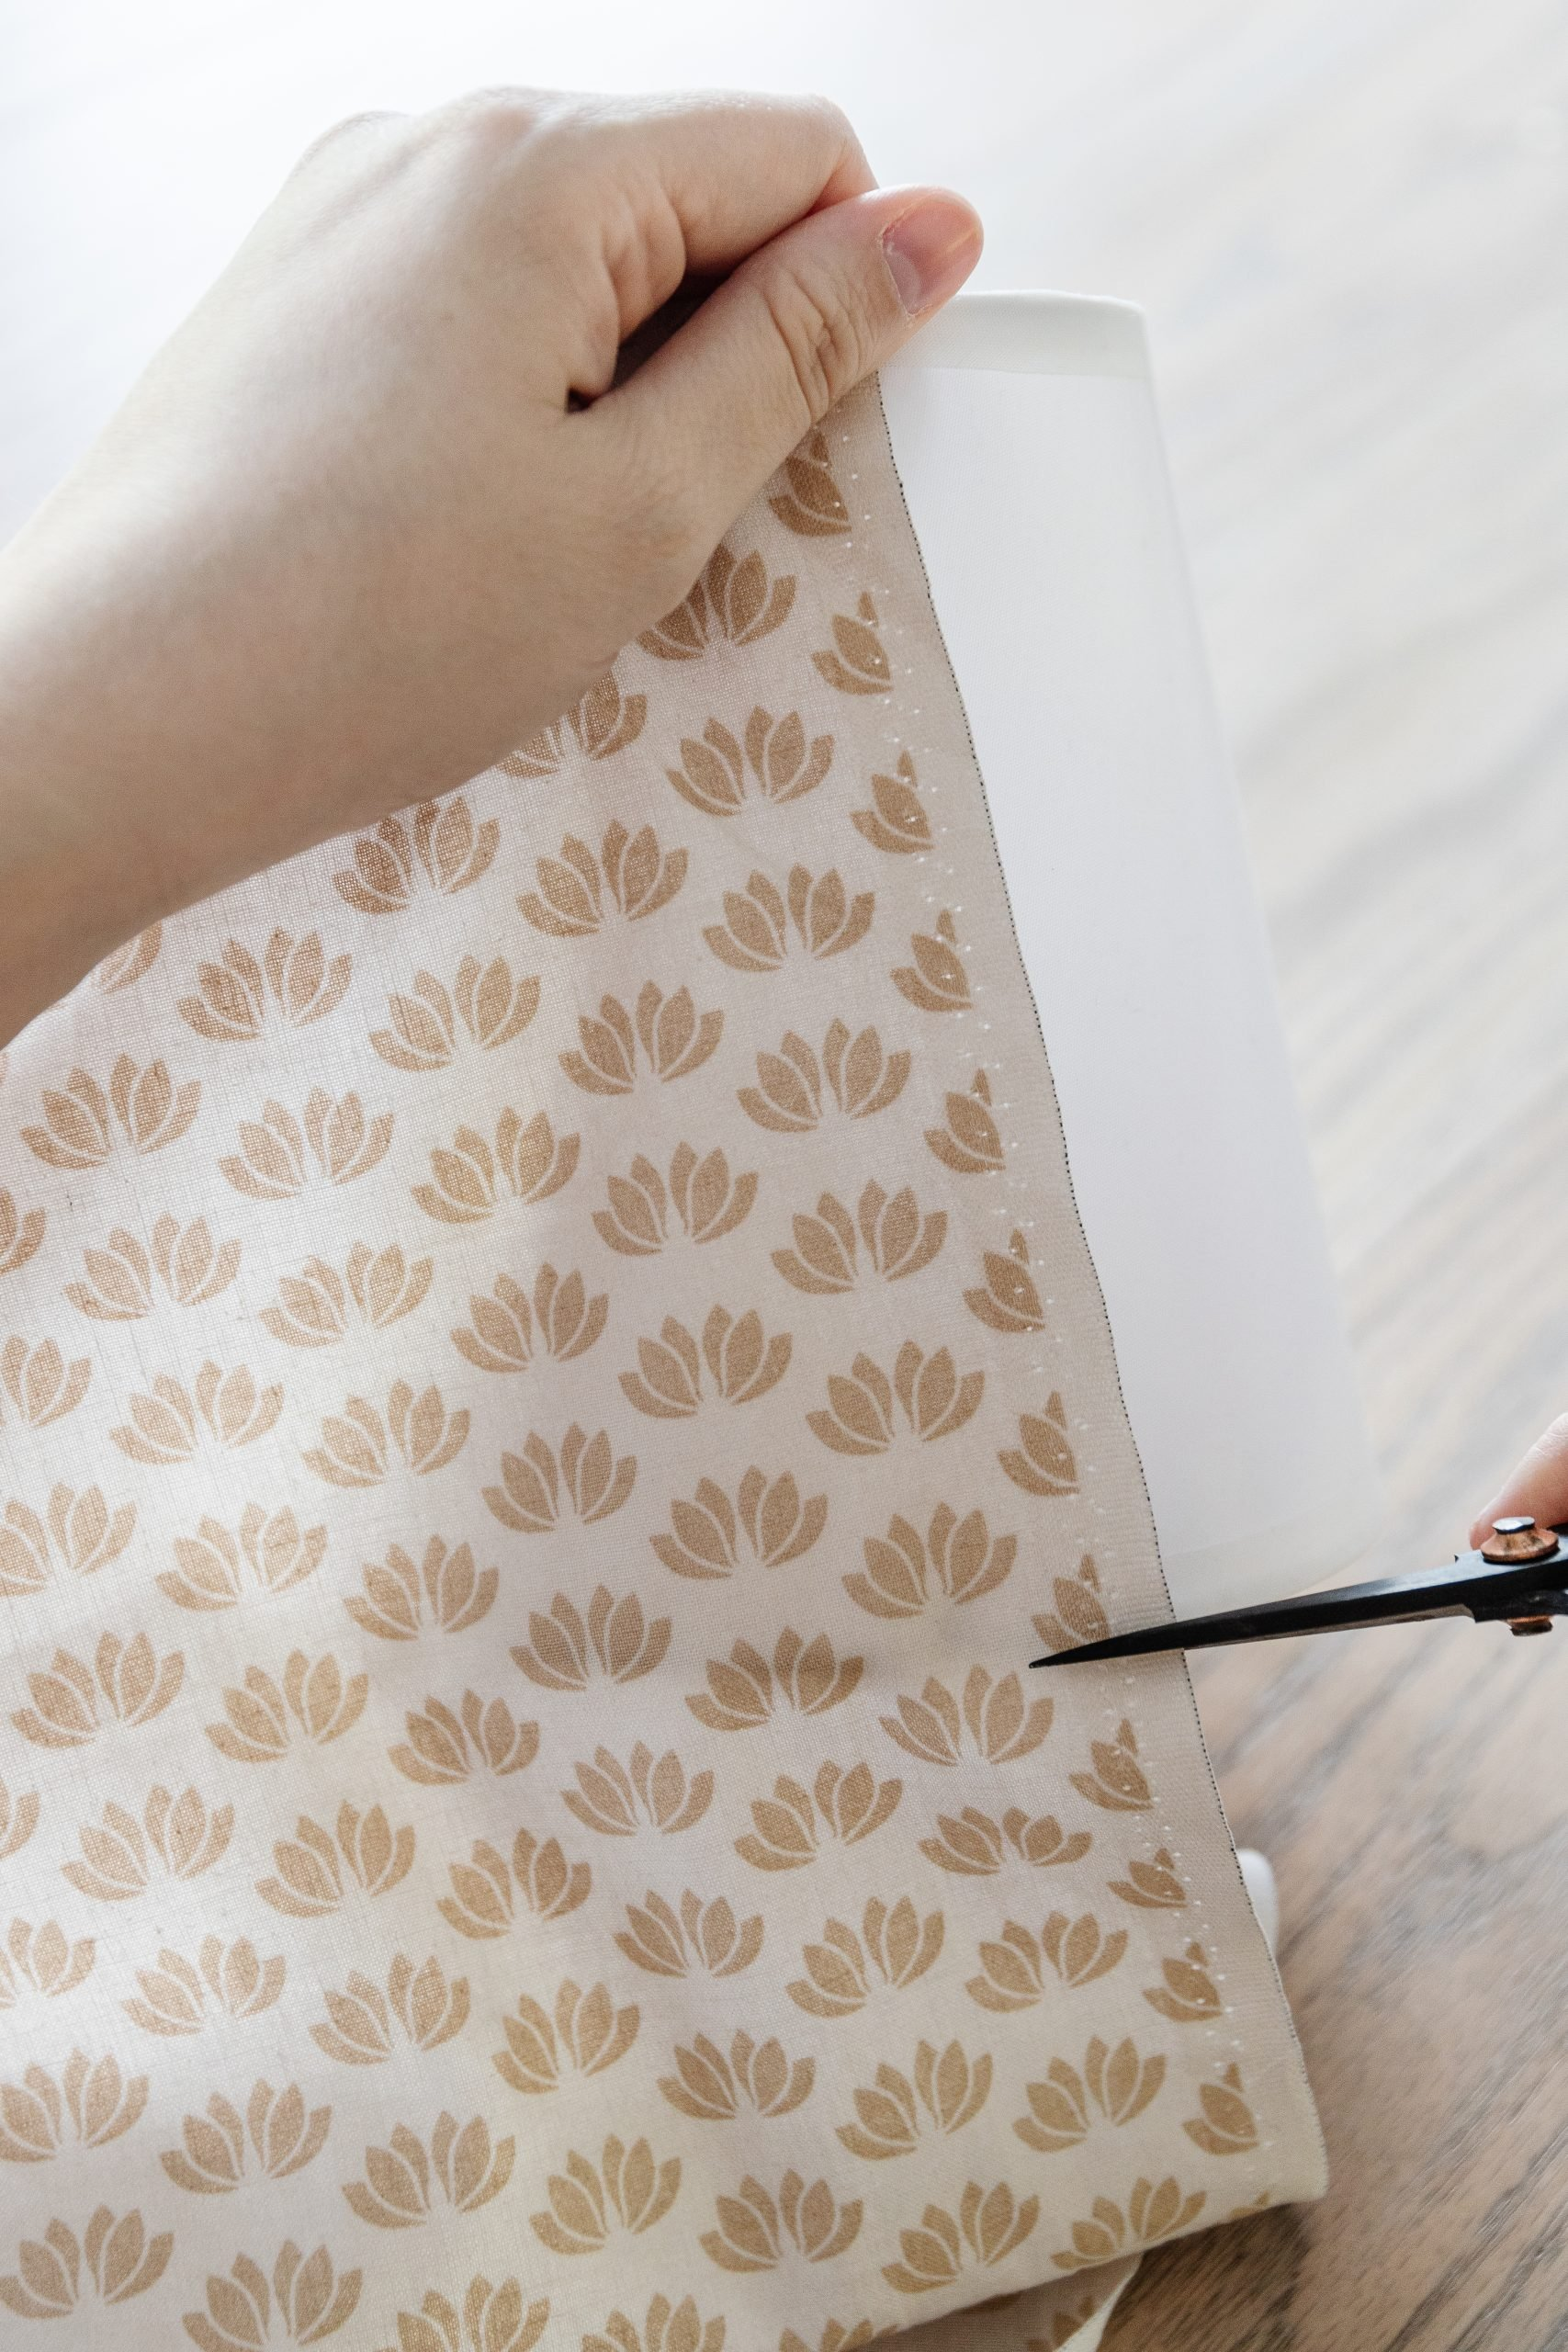 """Cut your fabric, so it's only 1"""" longer than your lampshade. You will trim off the extra fabric at the very end, but it's nice to have extra fabric just if you are working with a tapered lampshade. Start by making your first pleat. You want to place your glue on the very inside edge of the pleat and push it down, so it sticks to the lampshade. Once that has dried, move to the bottom part of the pleat and do the same. Do this same process over and over again until you've completed the lampshade. Make sure you're aware of how much fabric is on each end of the lampshade. You want to keep it centred. Once you're done, trim off all the excess material on the top and bottom, so it's flush with the lampshade edge. To create a """"finished"""" look, I used two stretchy elastic pieces and wrapped them in the material. Glue it on the edge of the lampshade - and you're done!"""